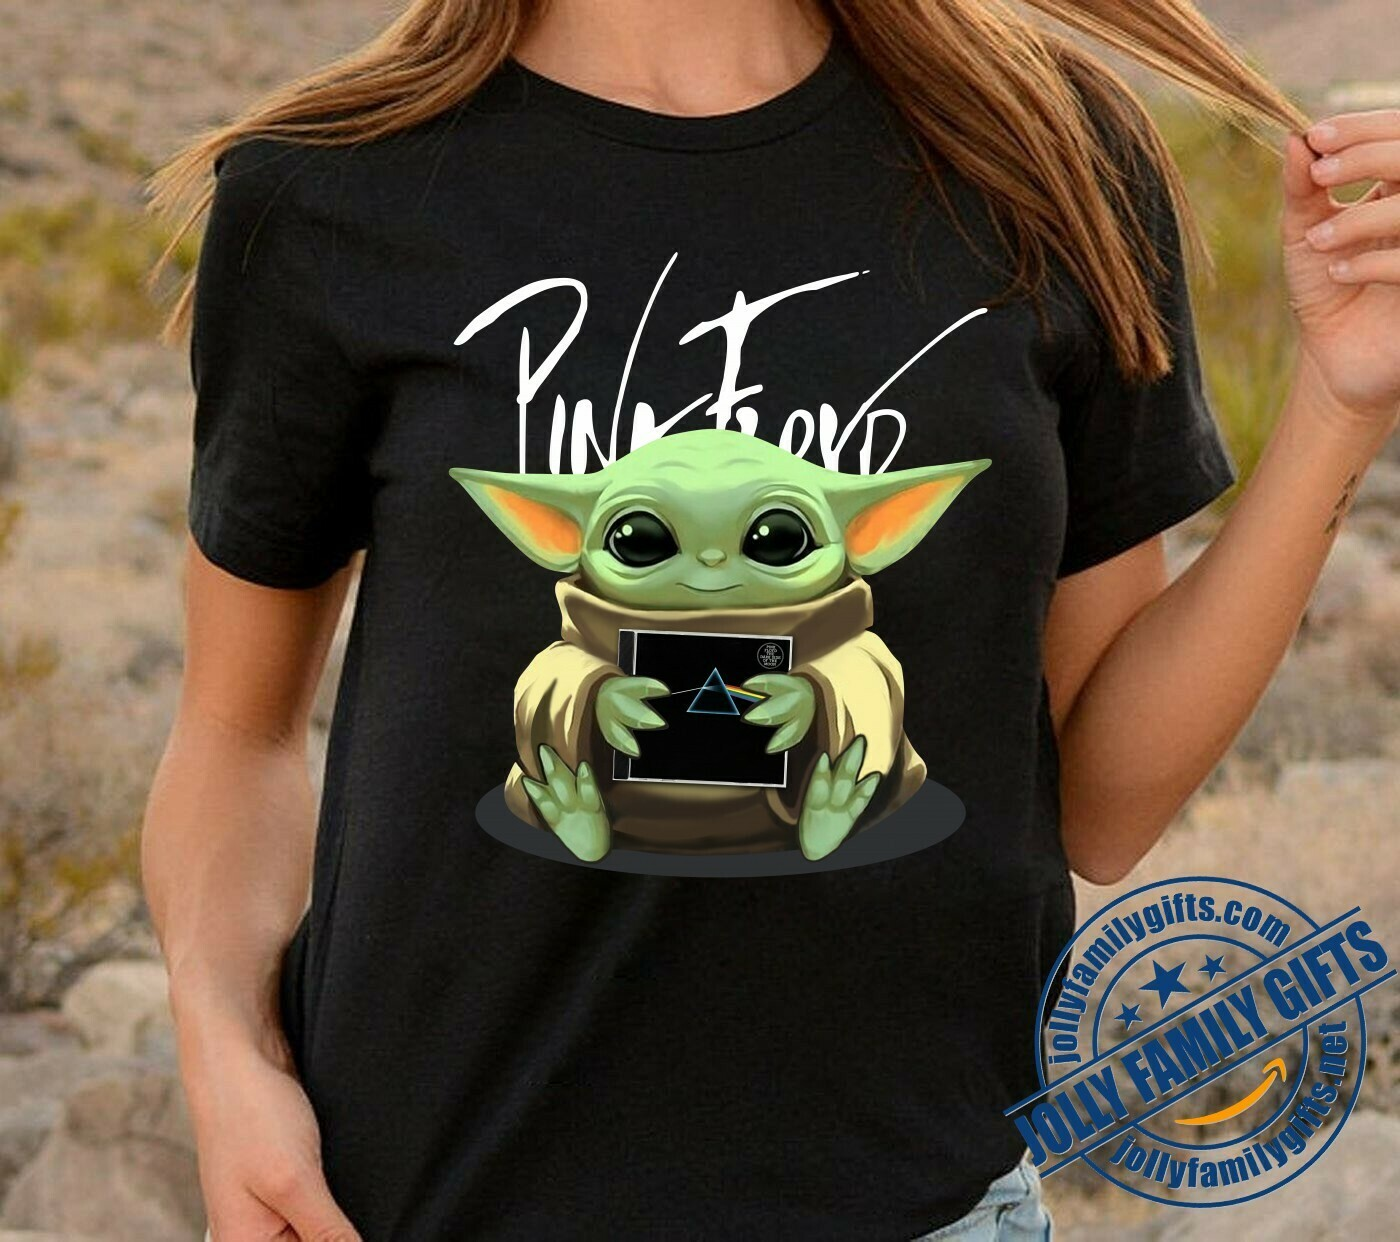 Baby Yoda The Mandalorian with death Star Wars Movie Baby Yoda Hug Pink Floyd love psychedelic Rock  T-Shirt Hoodie Sweatshirt Sweater Tee Kids Youth Gifts Jolly Family Gifts